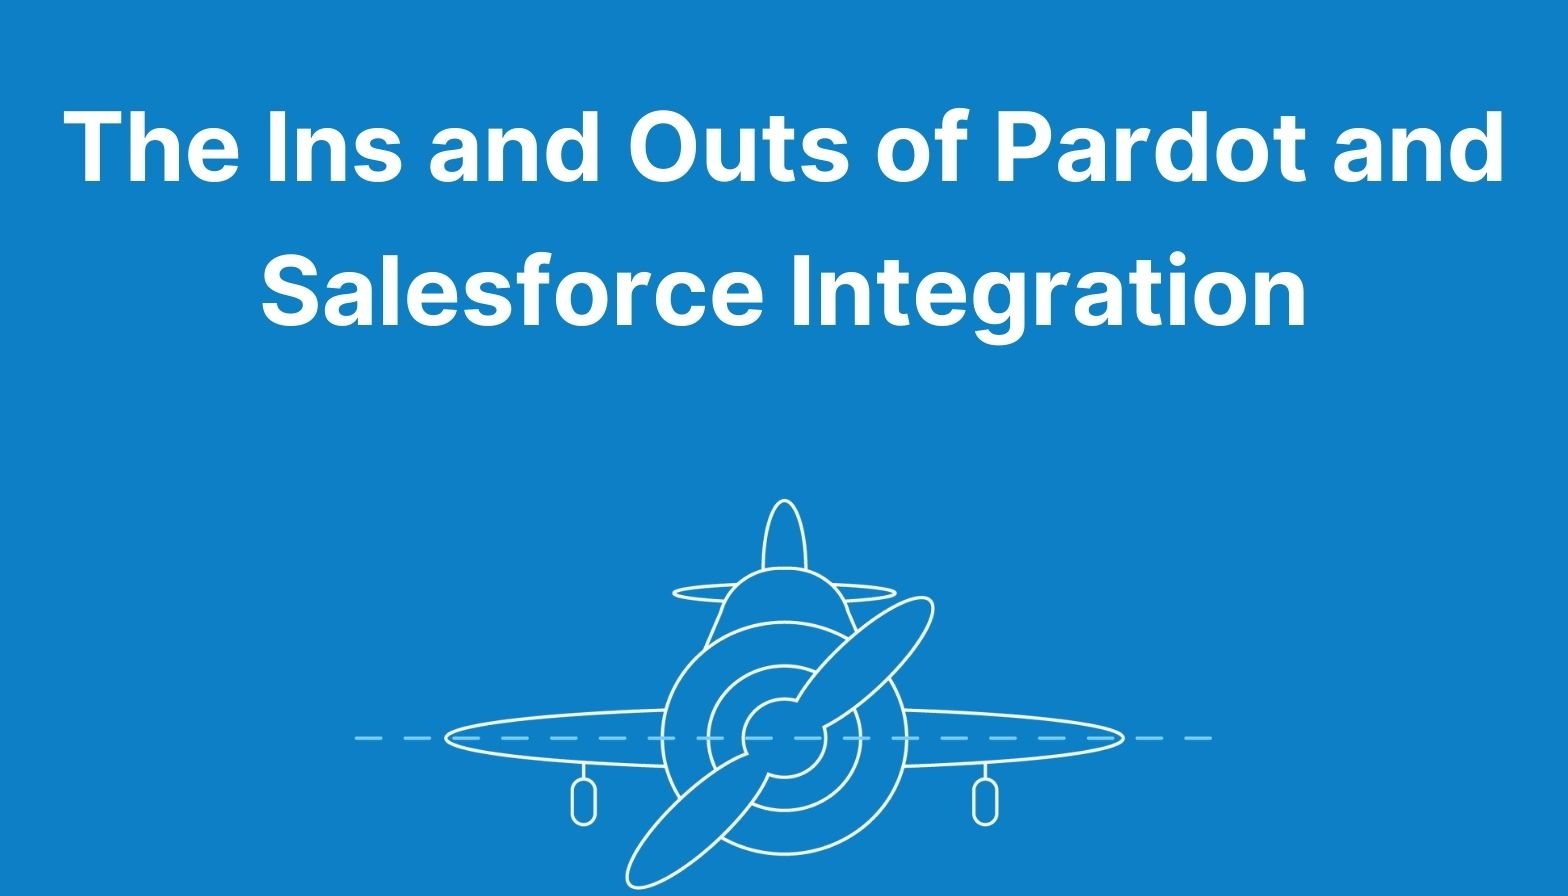 The Ins and Outs of Pardot and Salesforce Integration